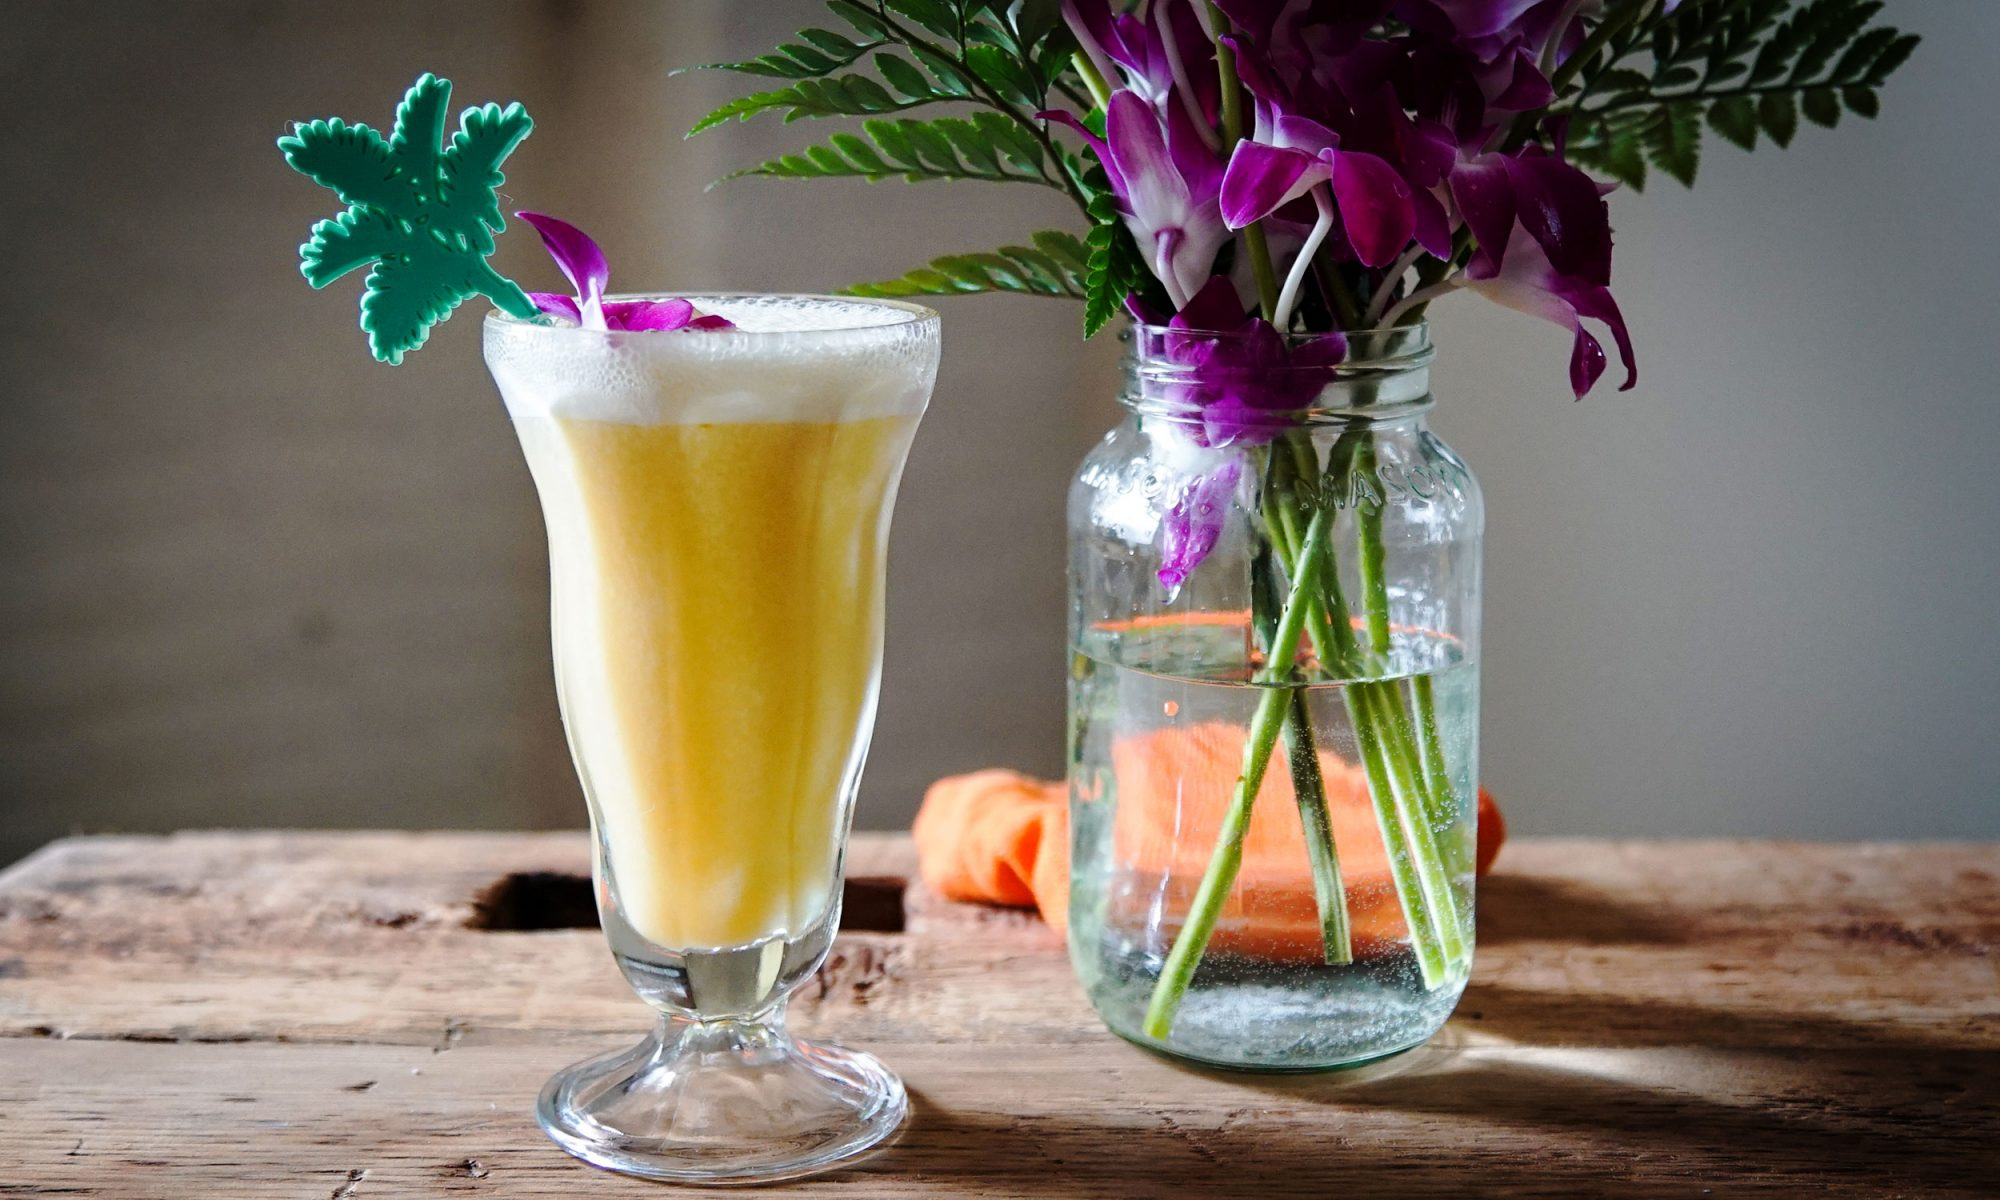 EC: Ramos Gin Fizz and Mango Lassi Hooked Up and Made a Beautiful Baby